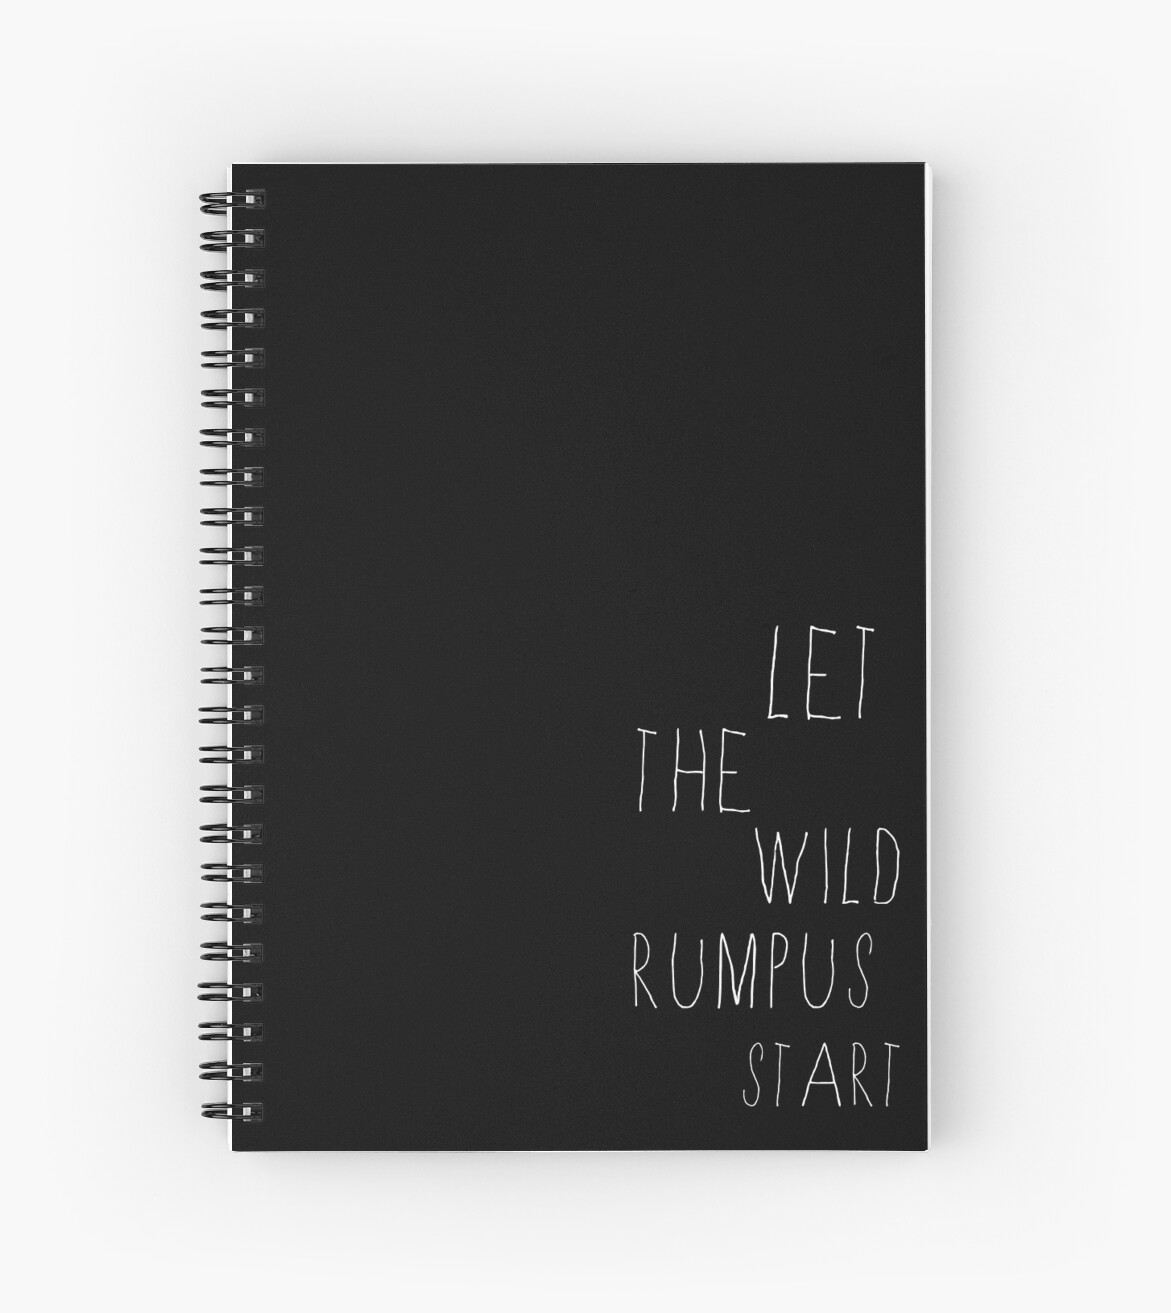 Where The Wild Things Are by Nomar Lugo